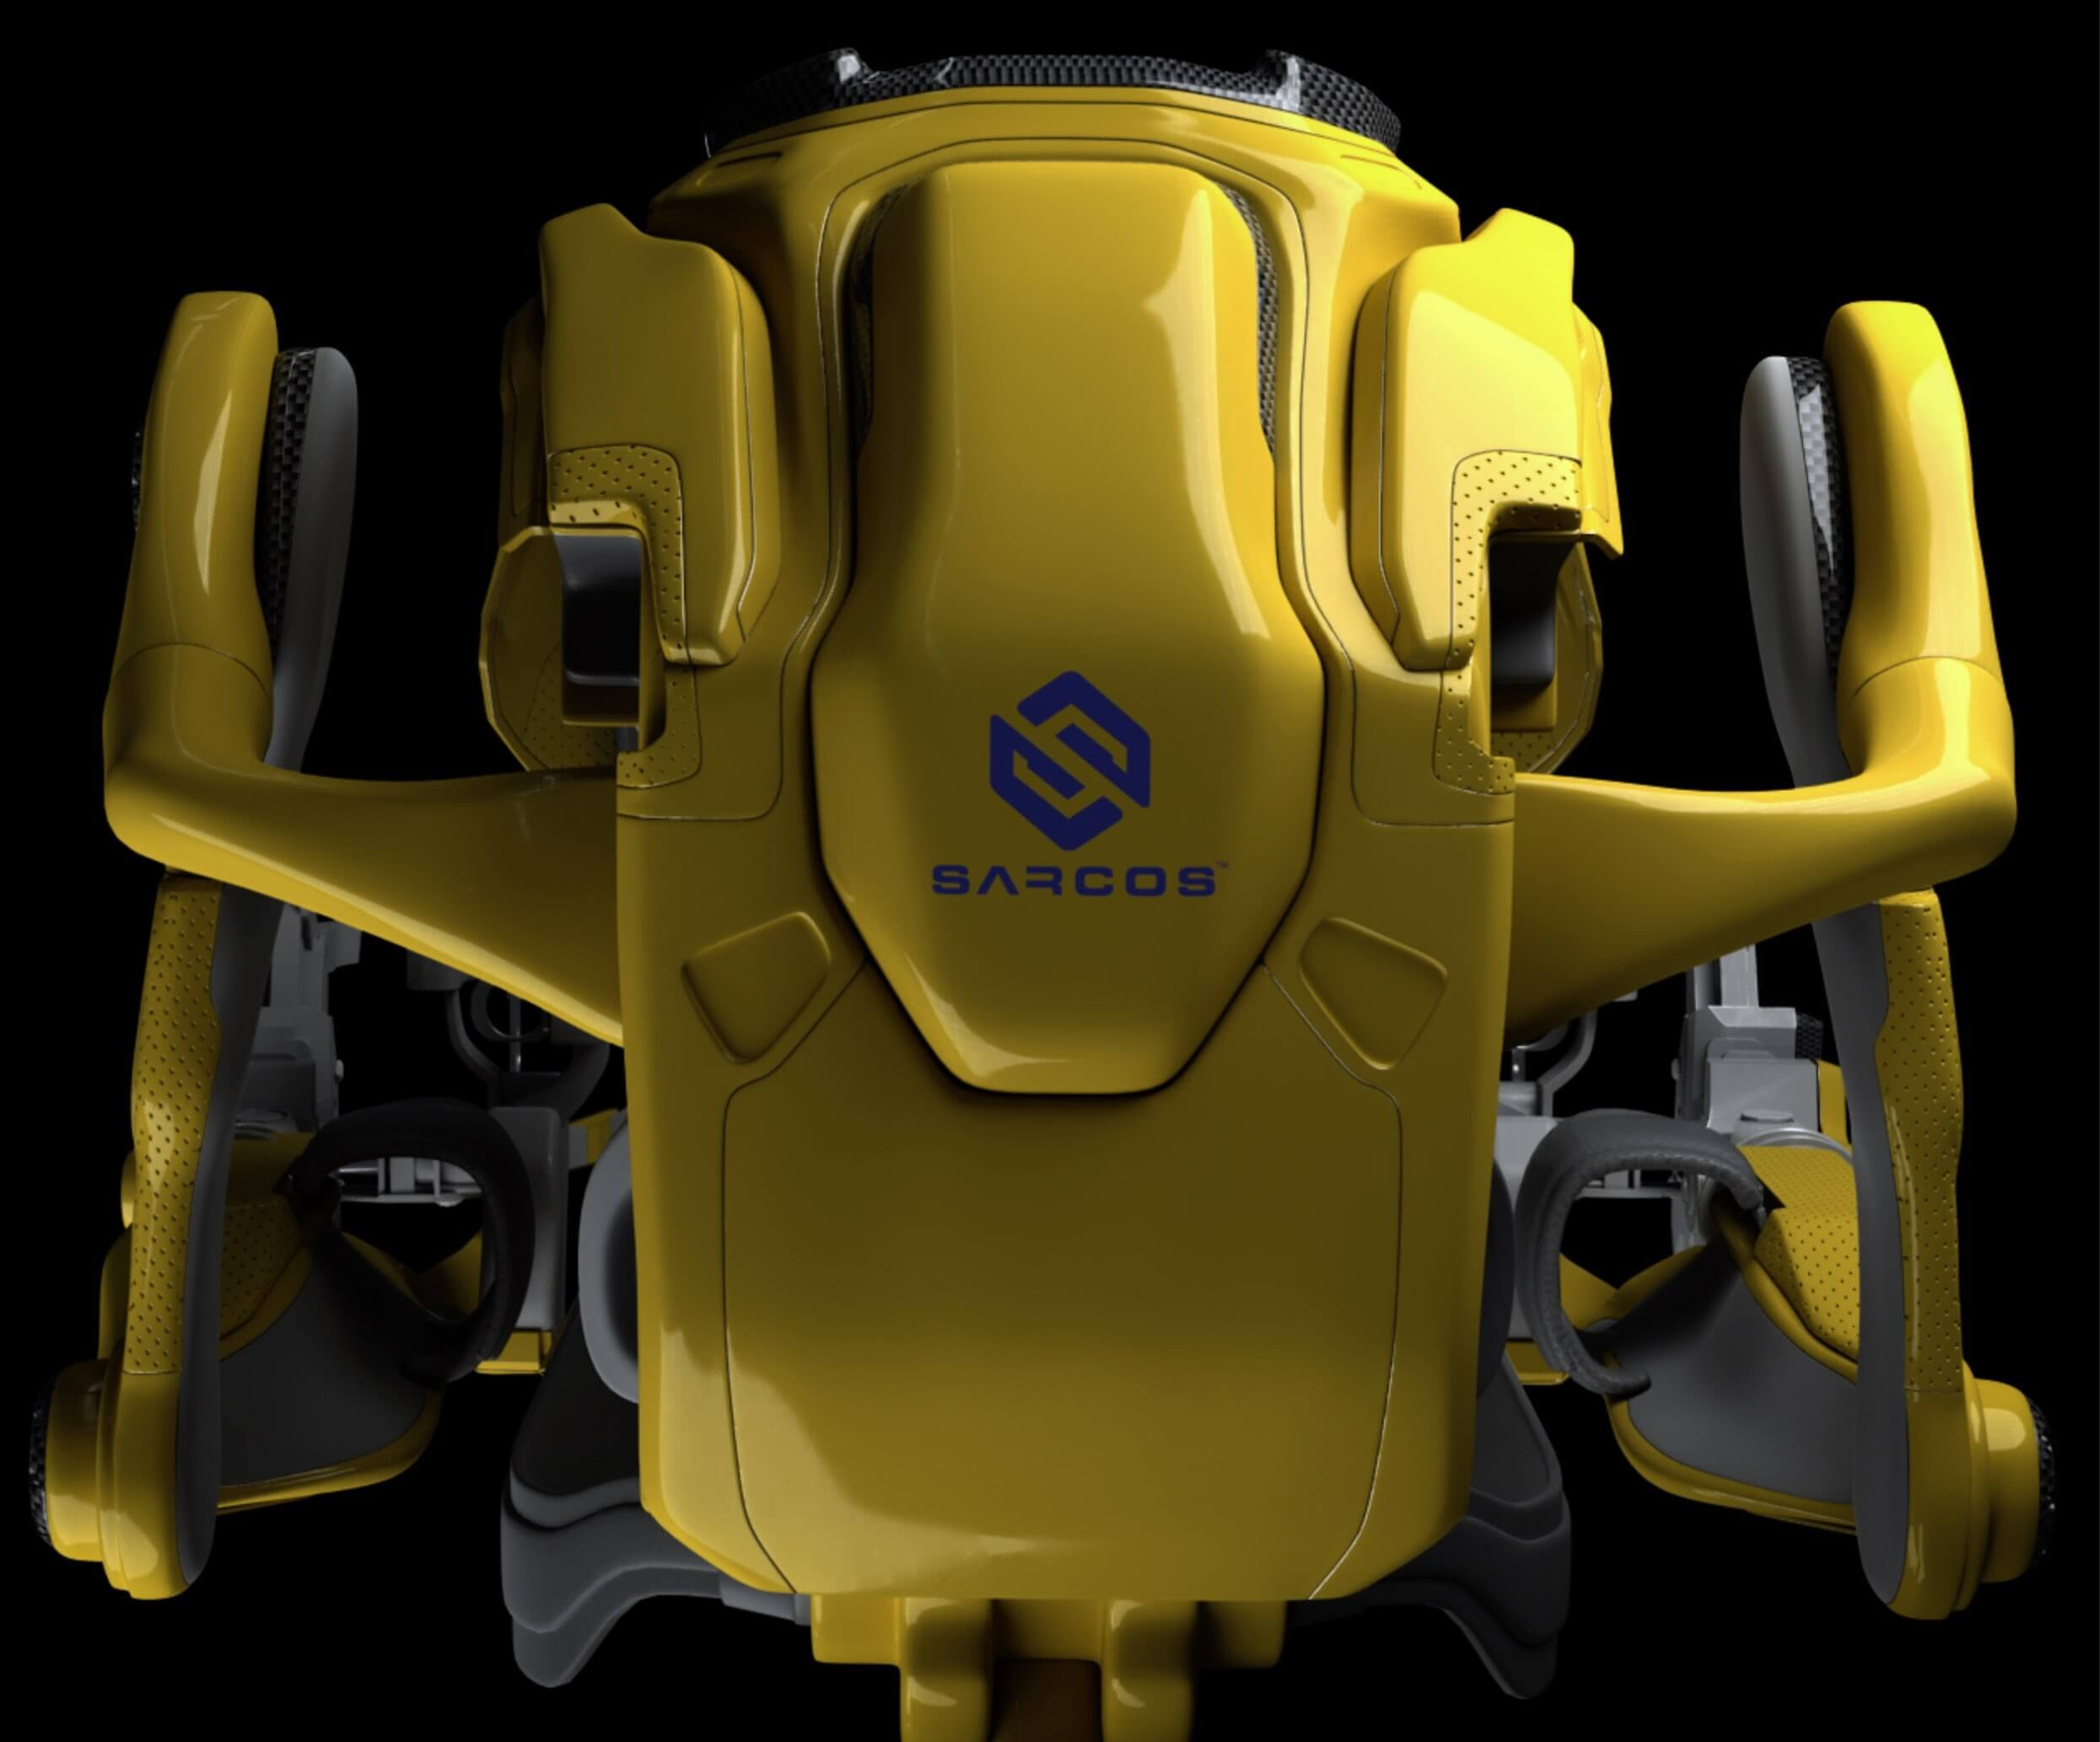 Robotics startup Sarcos will rollout industrial exoskeletons this year